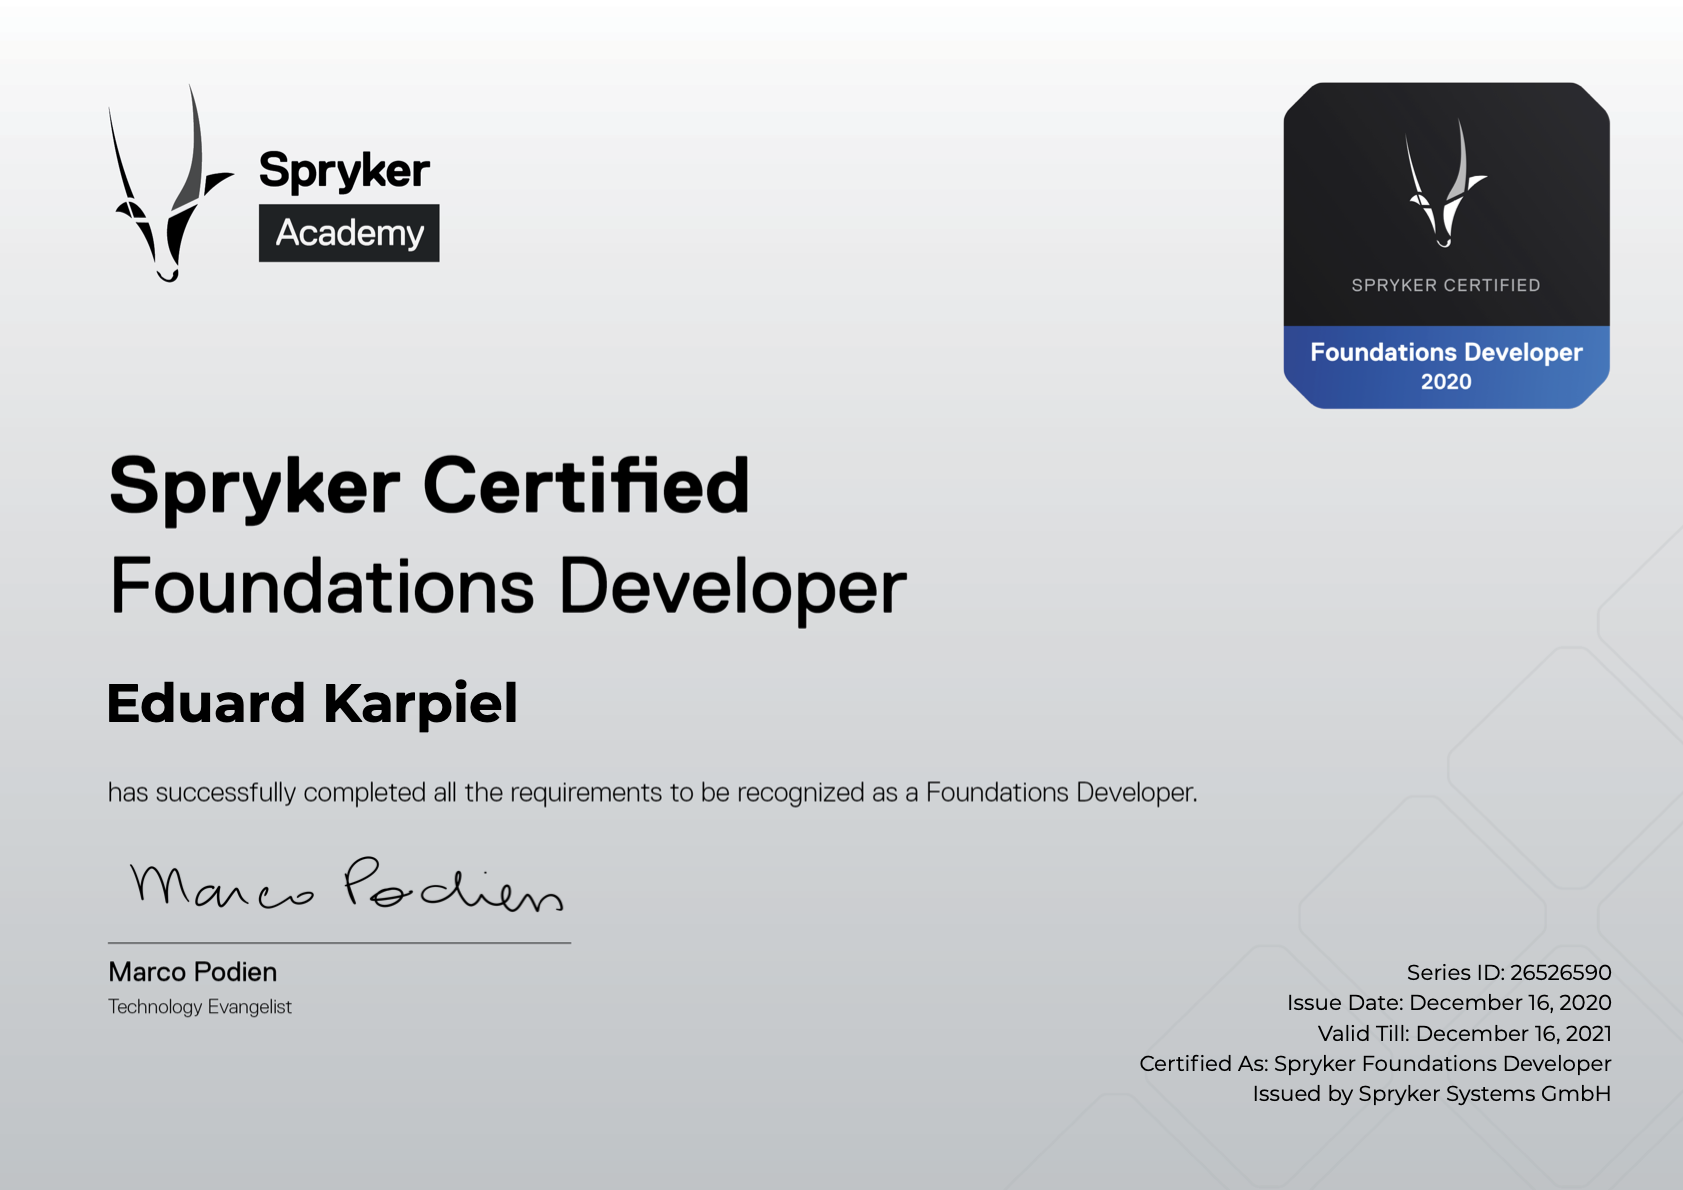 Spryker Foundations Developer Certificate